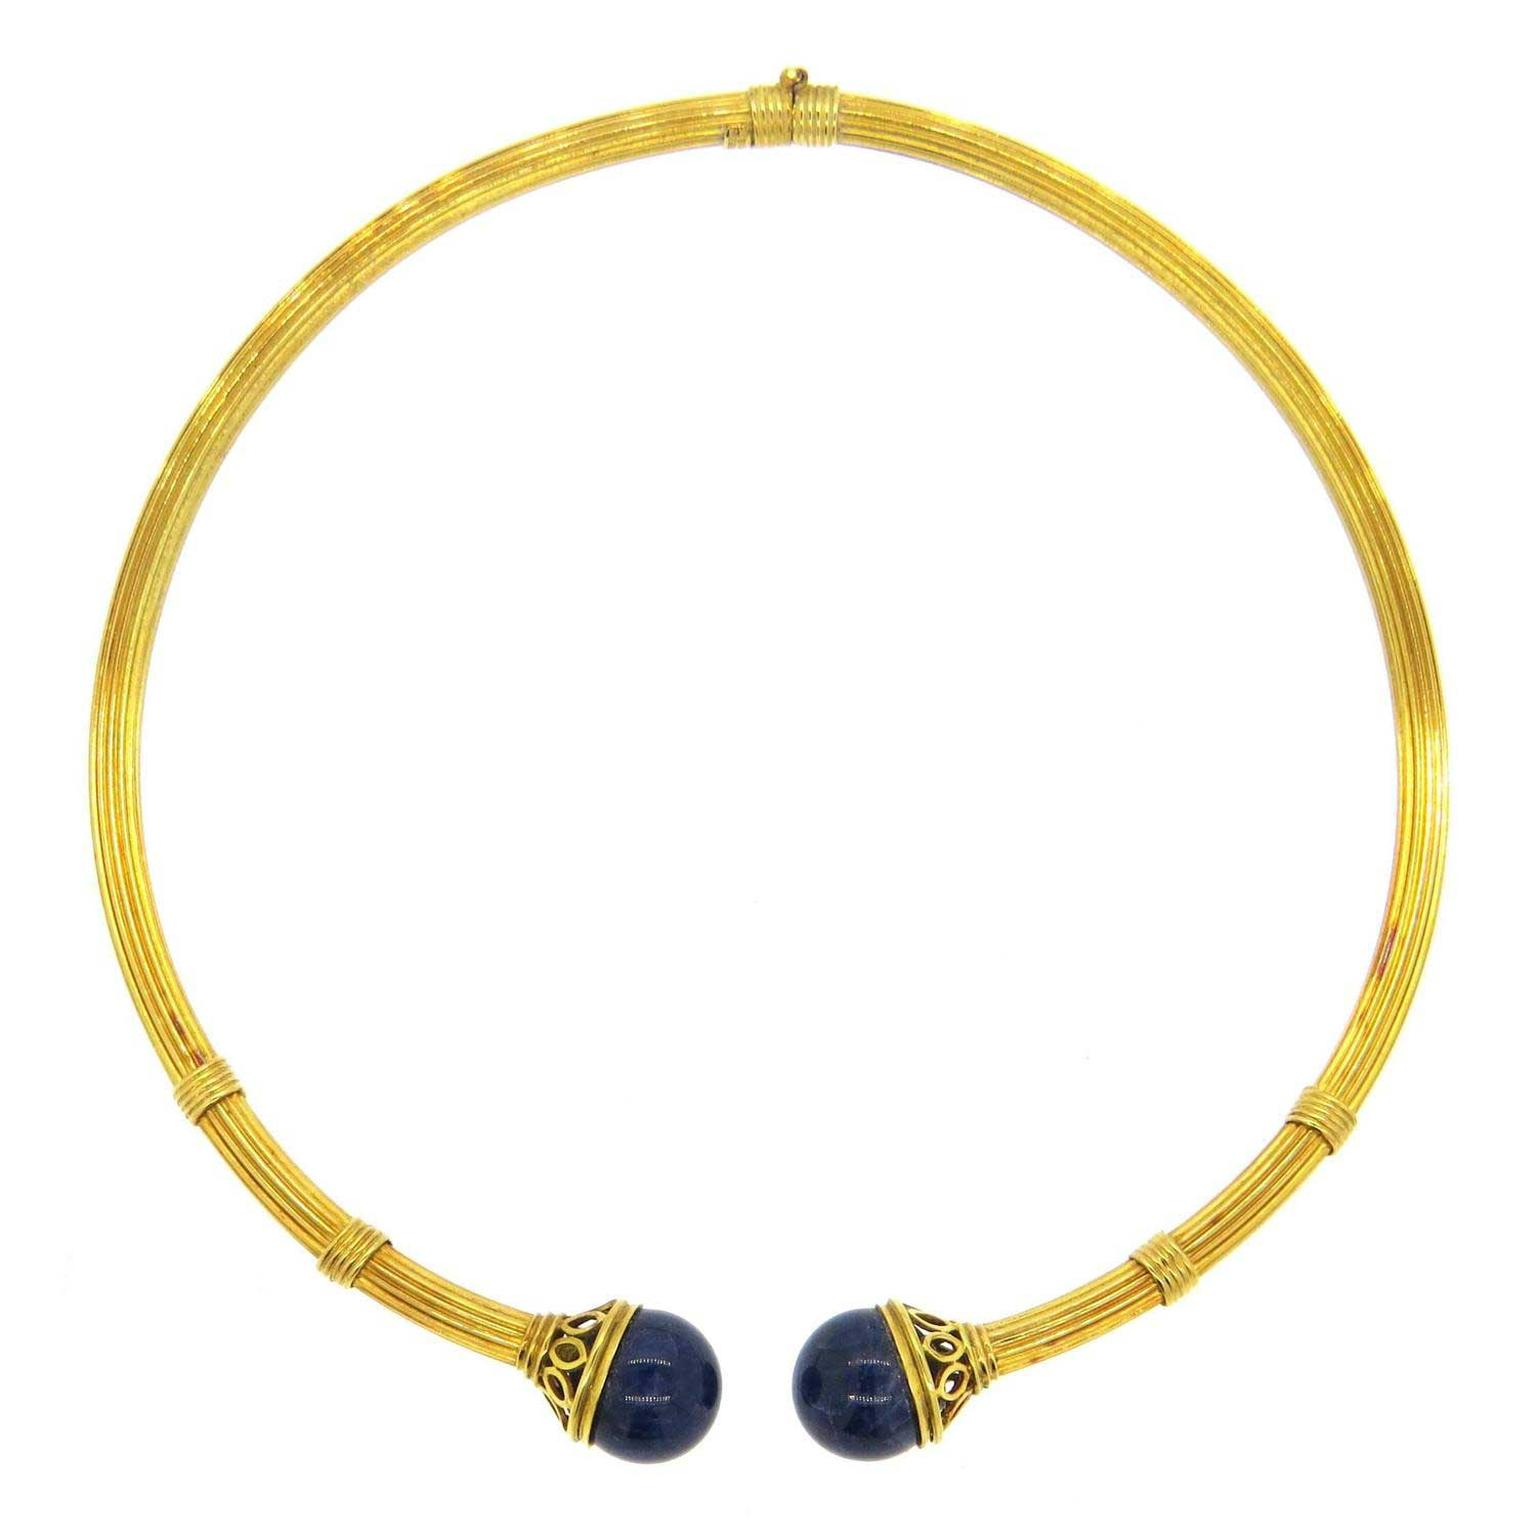 Ilias Lalaounis gold torque necklace with lapis lazuli